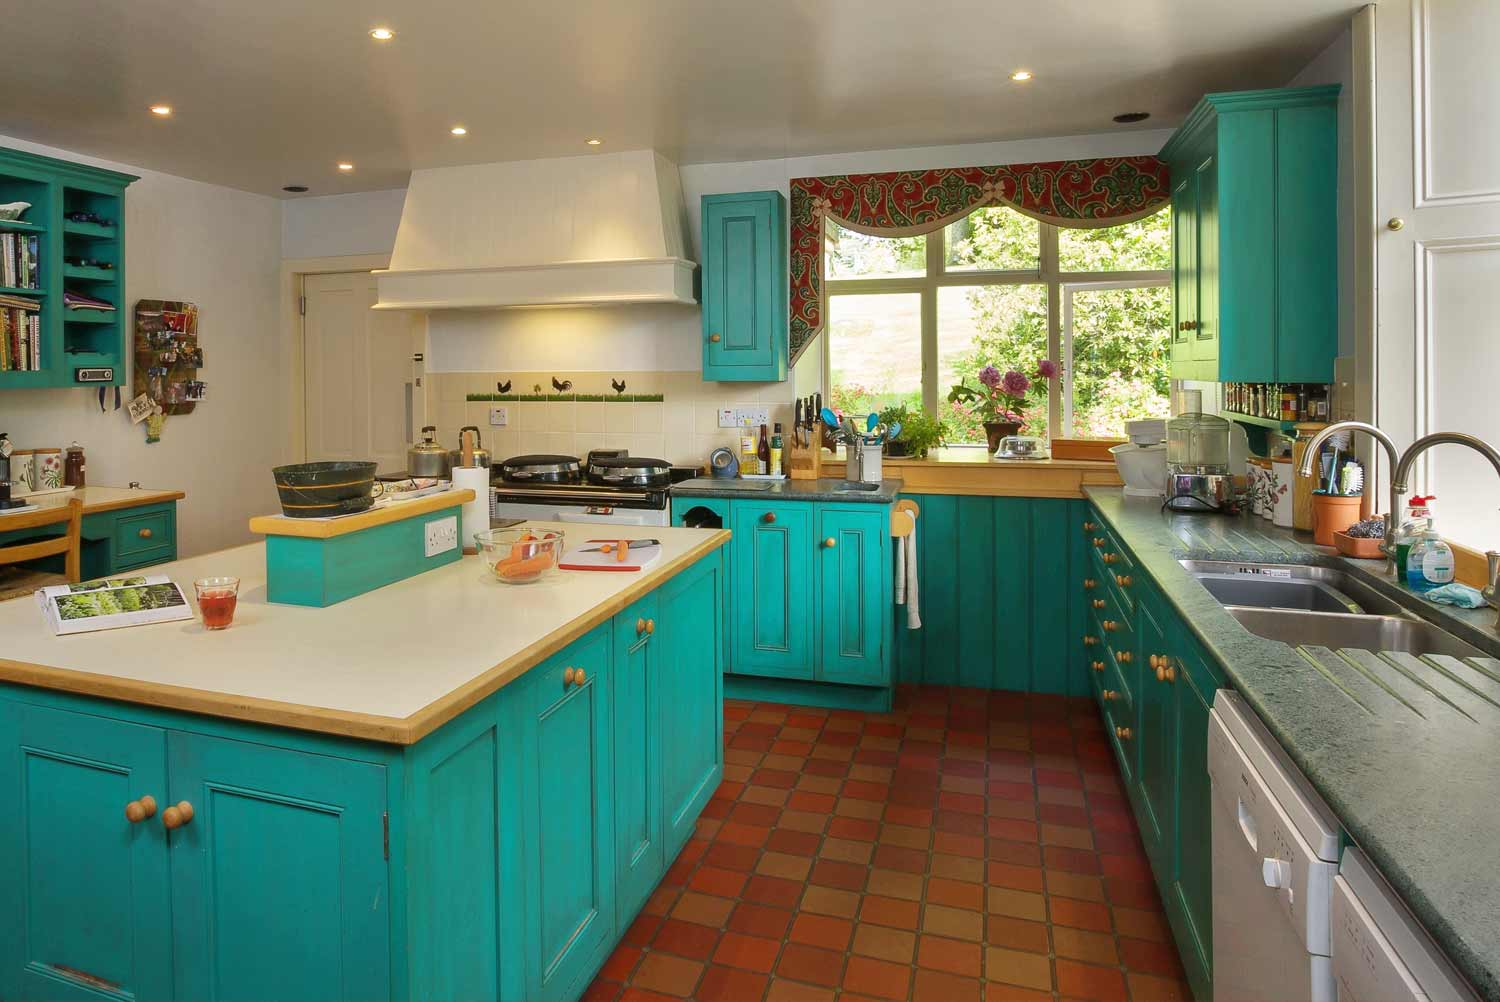 Luxury self catering accommodation in scotland for Luxury kitchens scotland